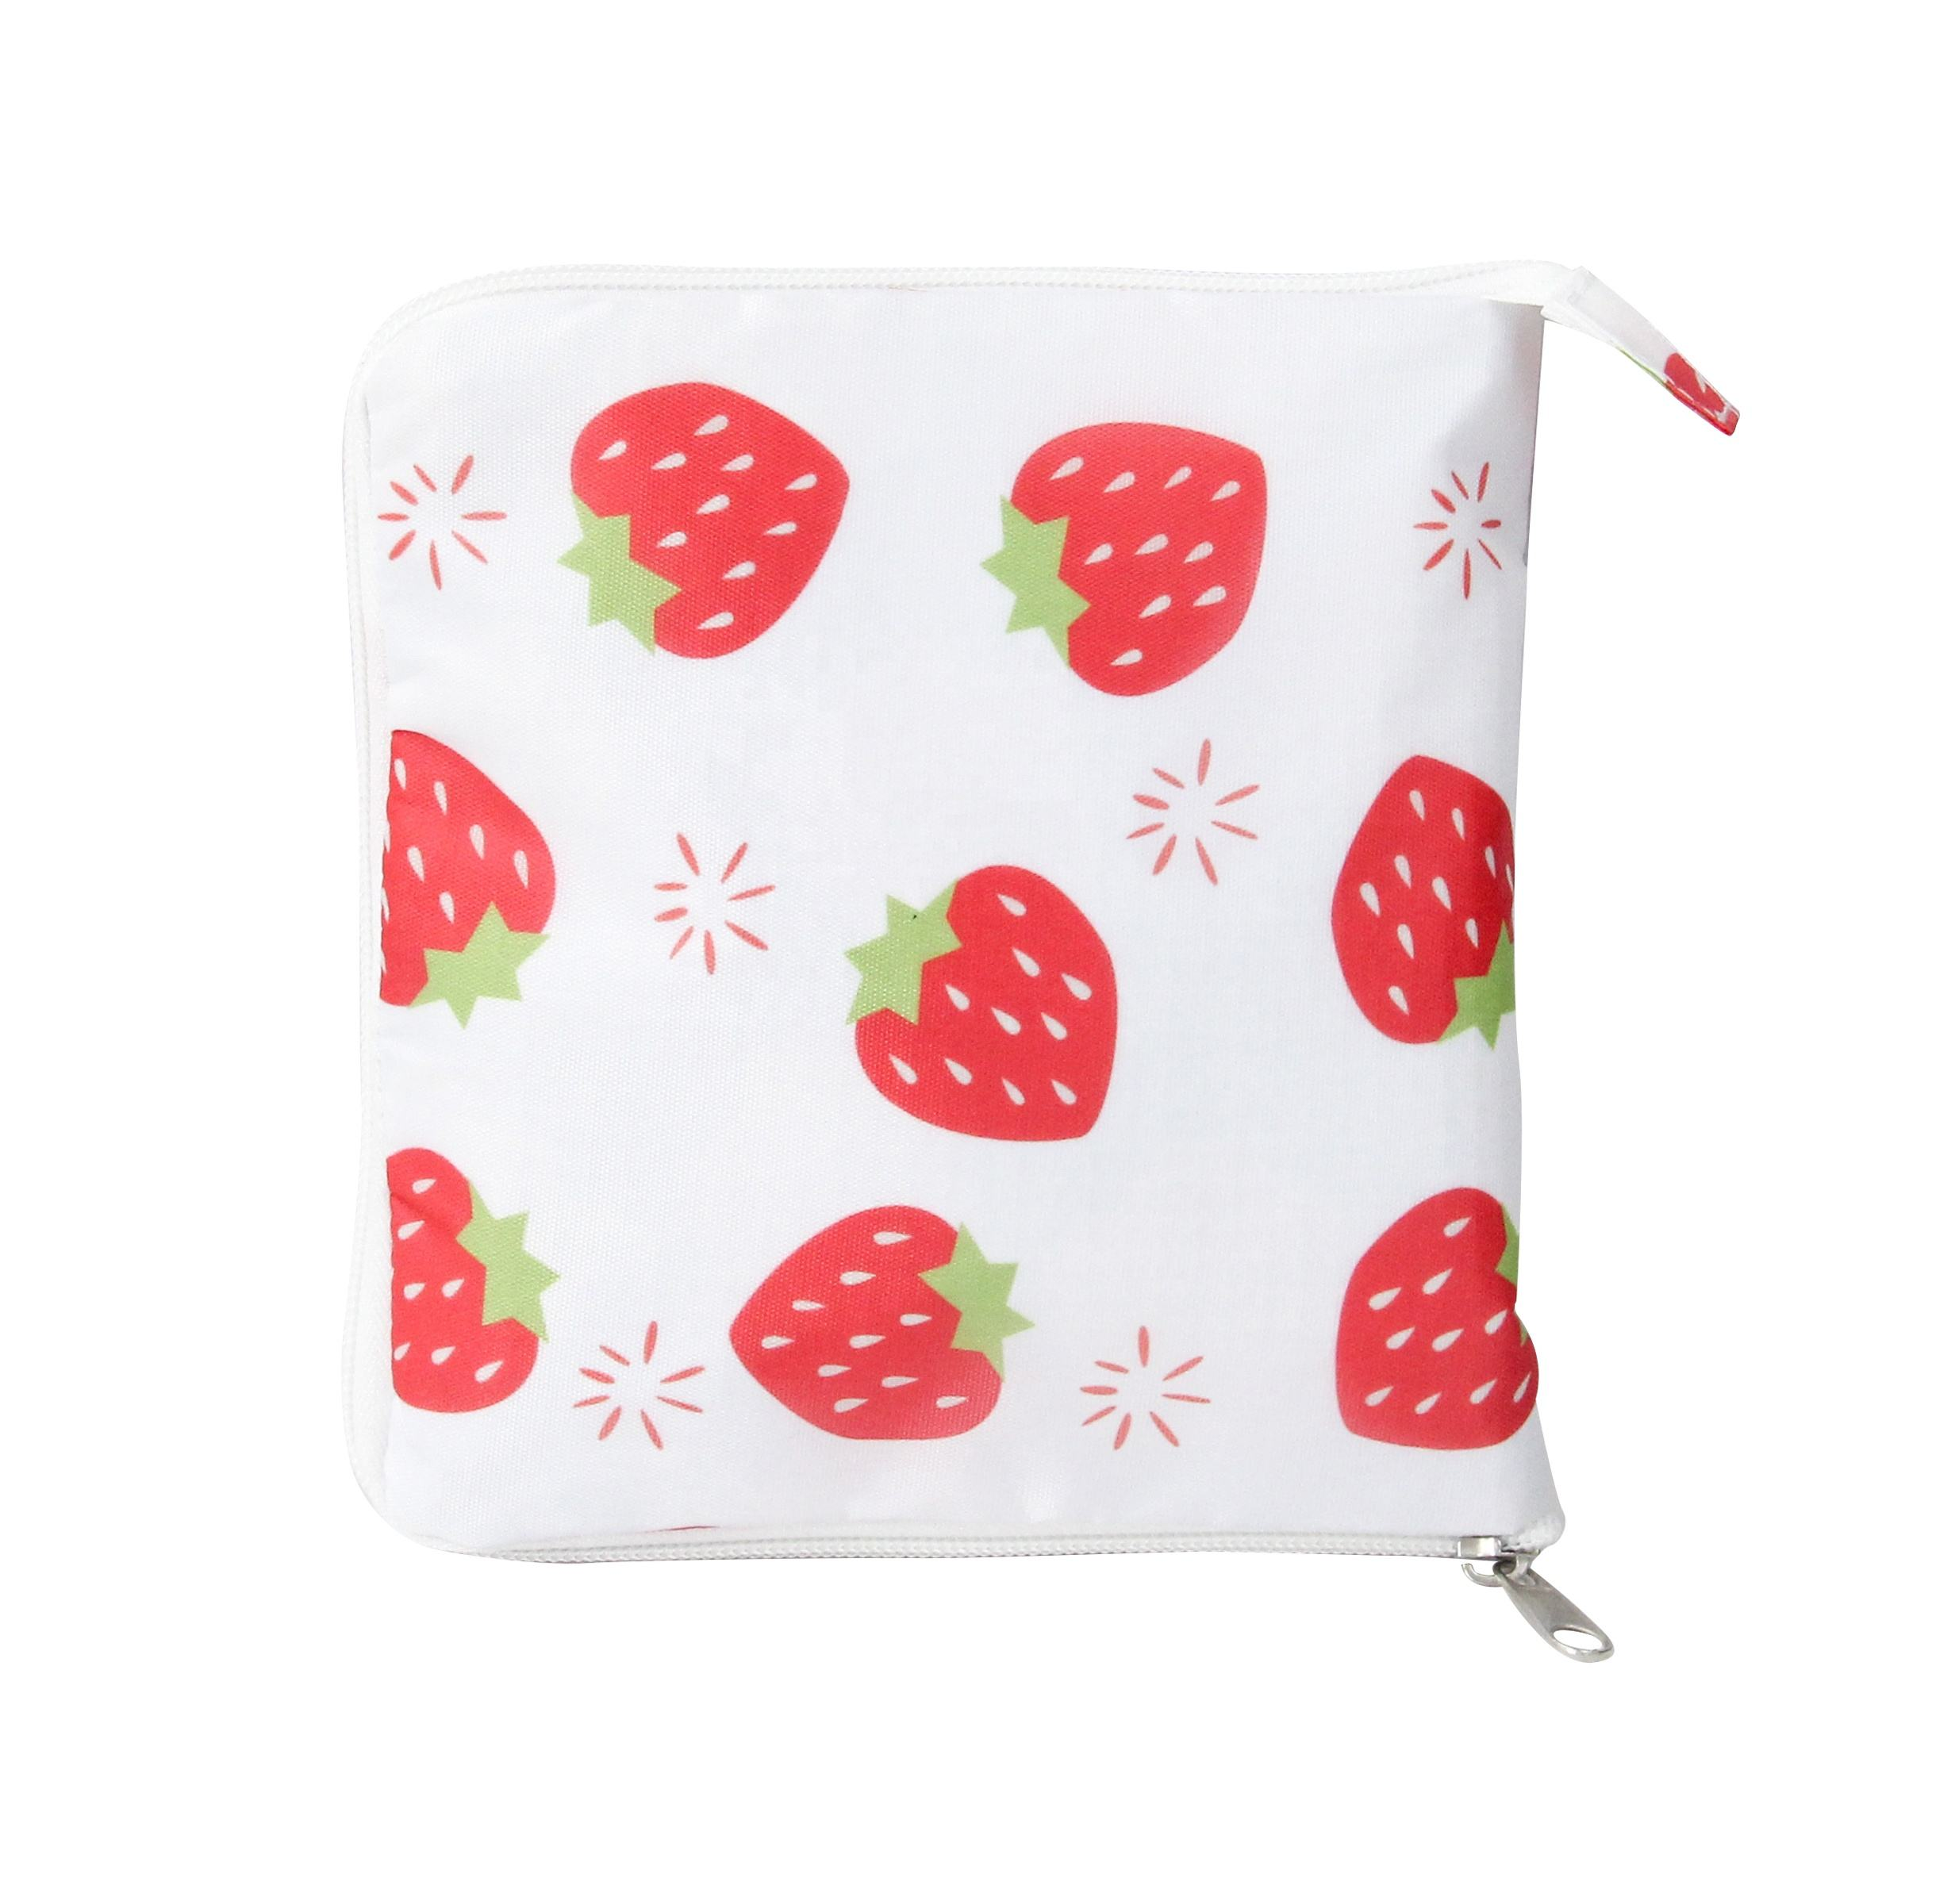 Flower Flower Allover Printing Cooler Tote Bag